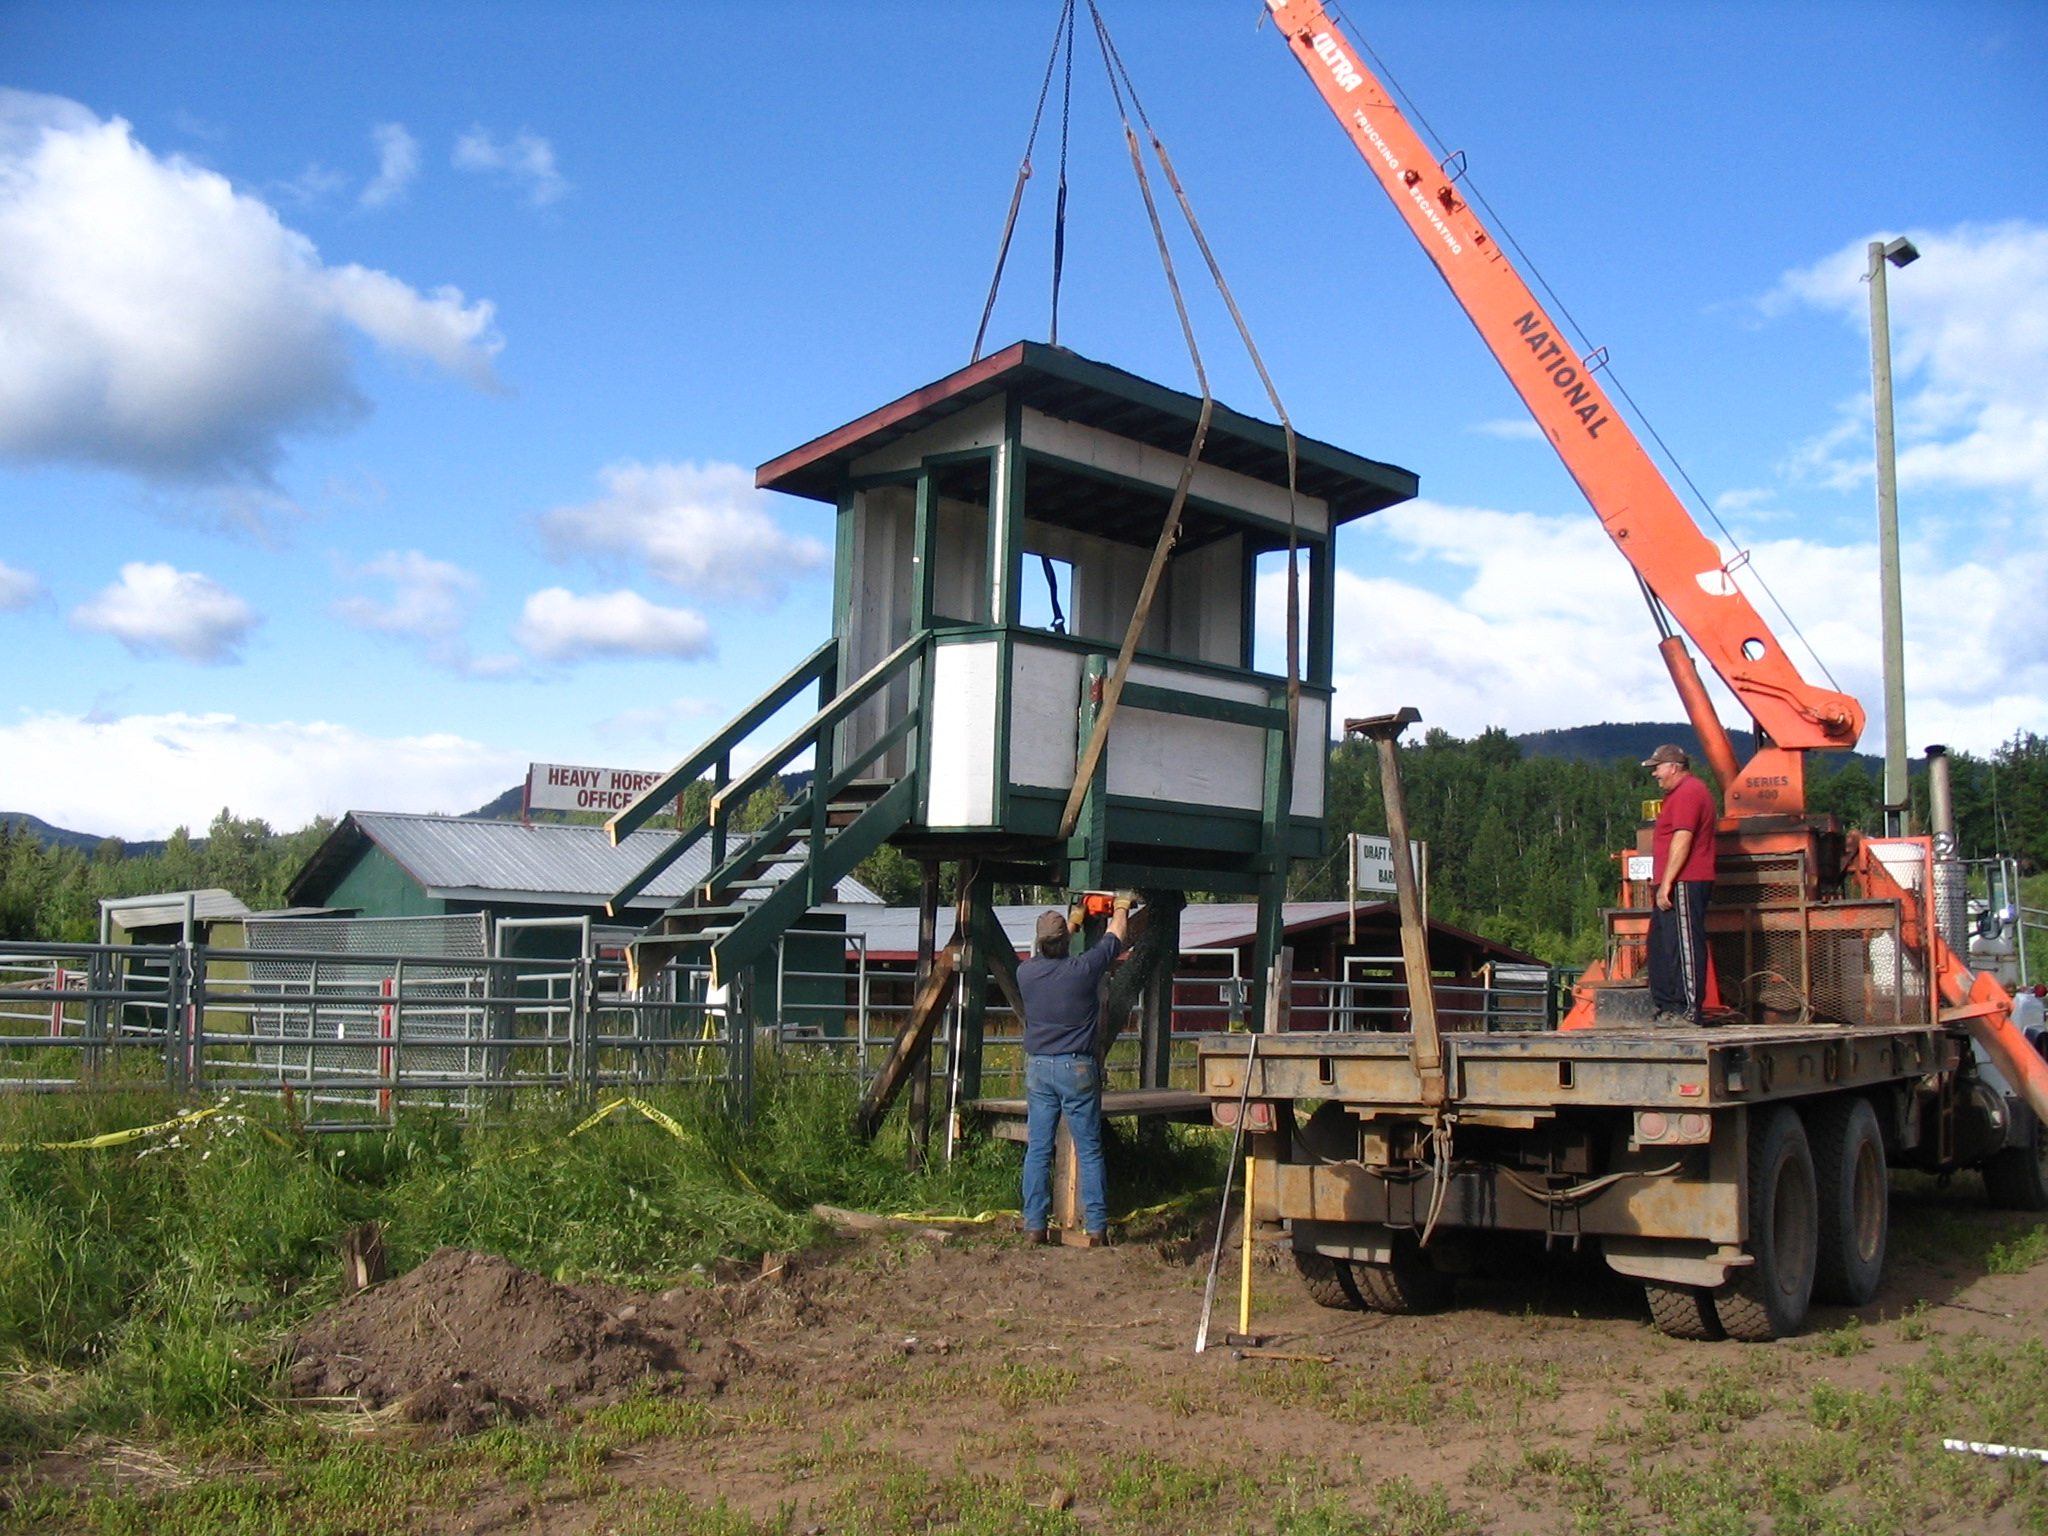 2008 - SRC Old Rodeo Announcer booth gets a new location, thanks to ULTRA TRUCKING & EXCAVATING !